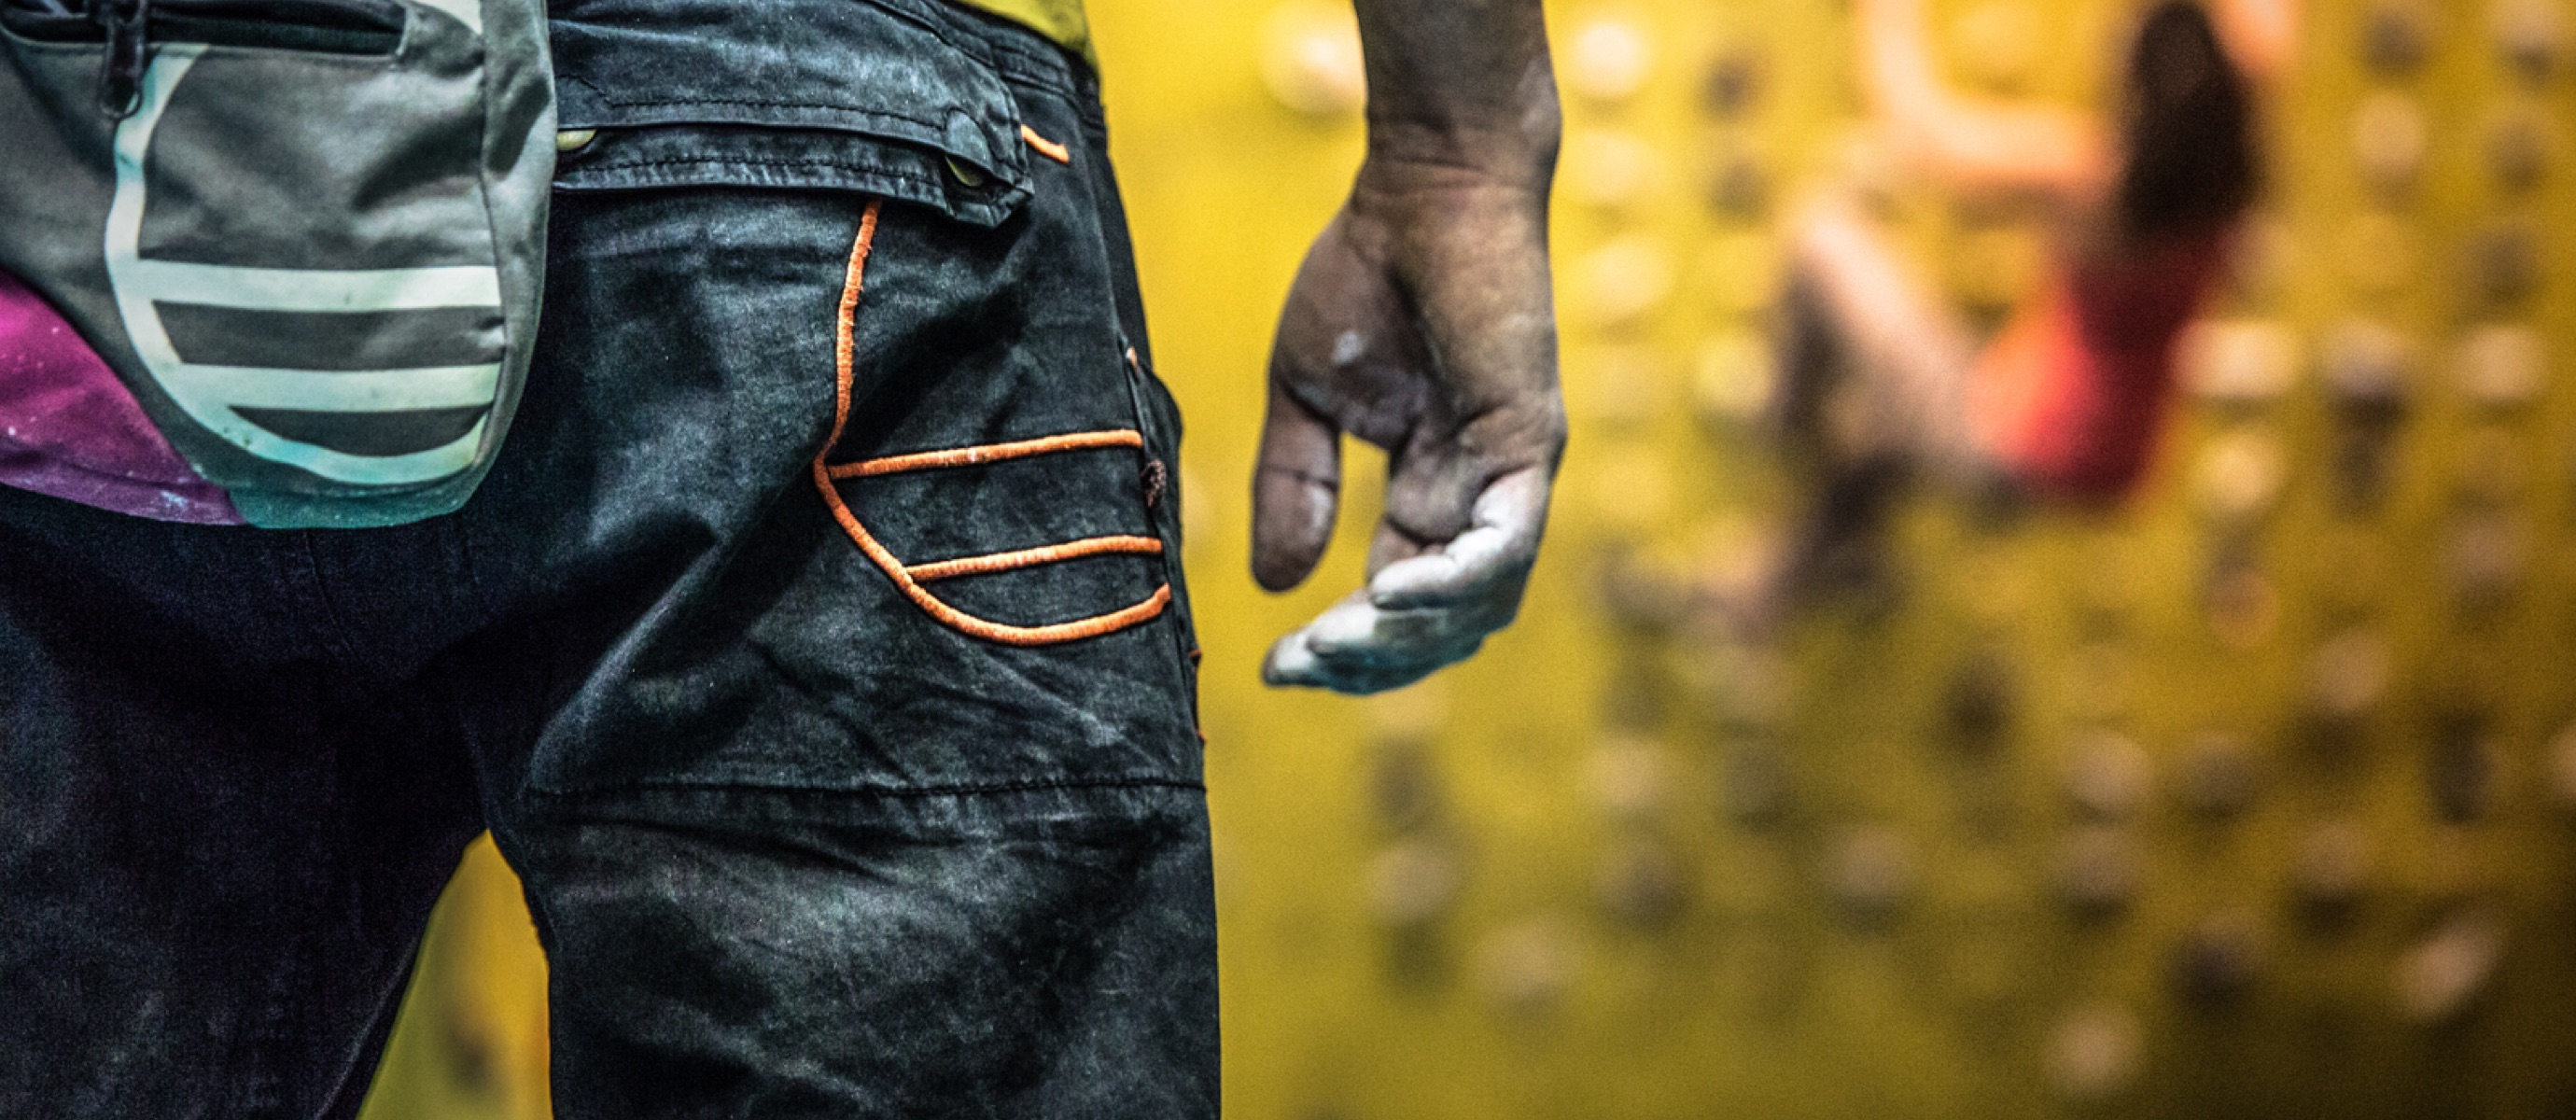 Climber with chalk-covered hands